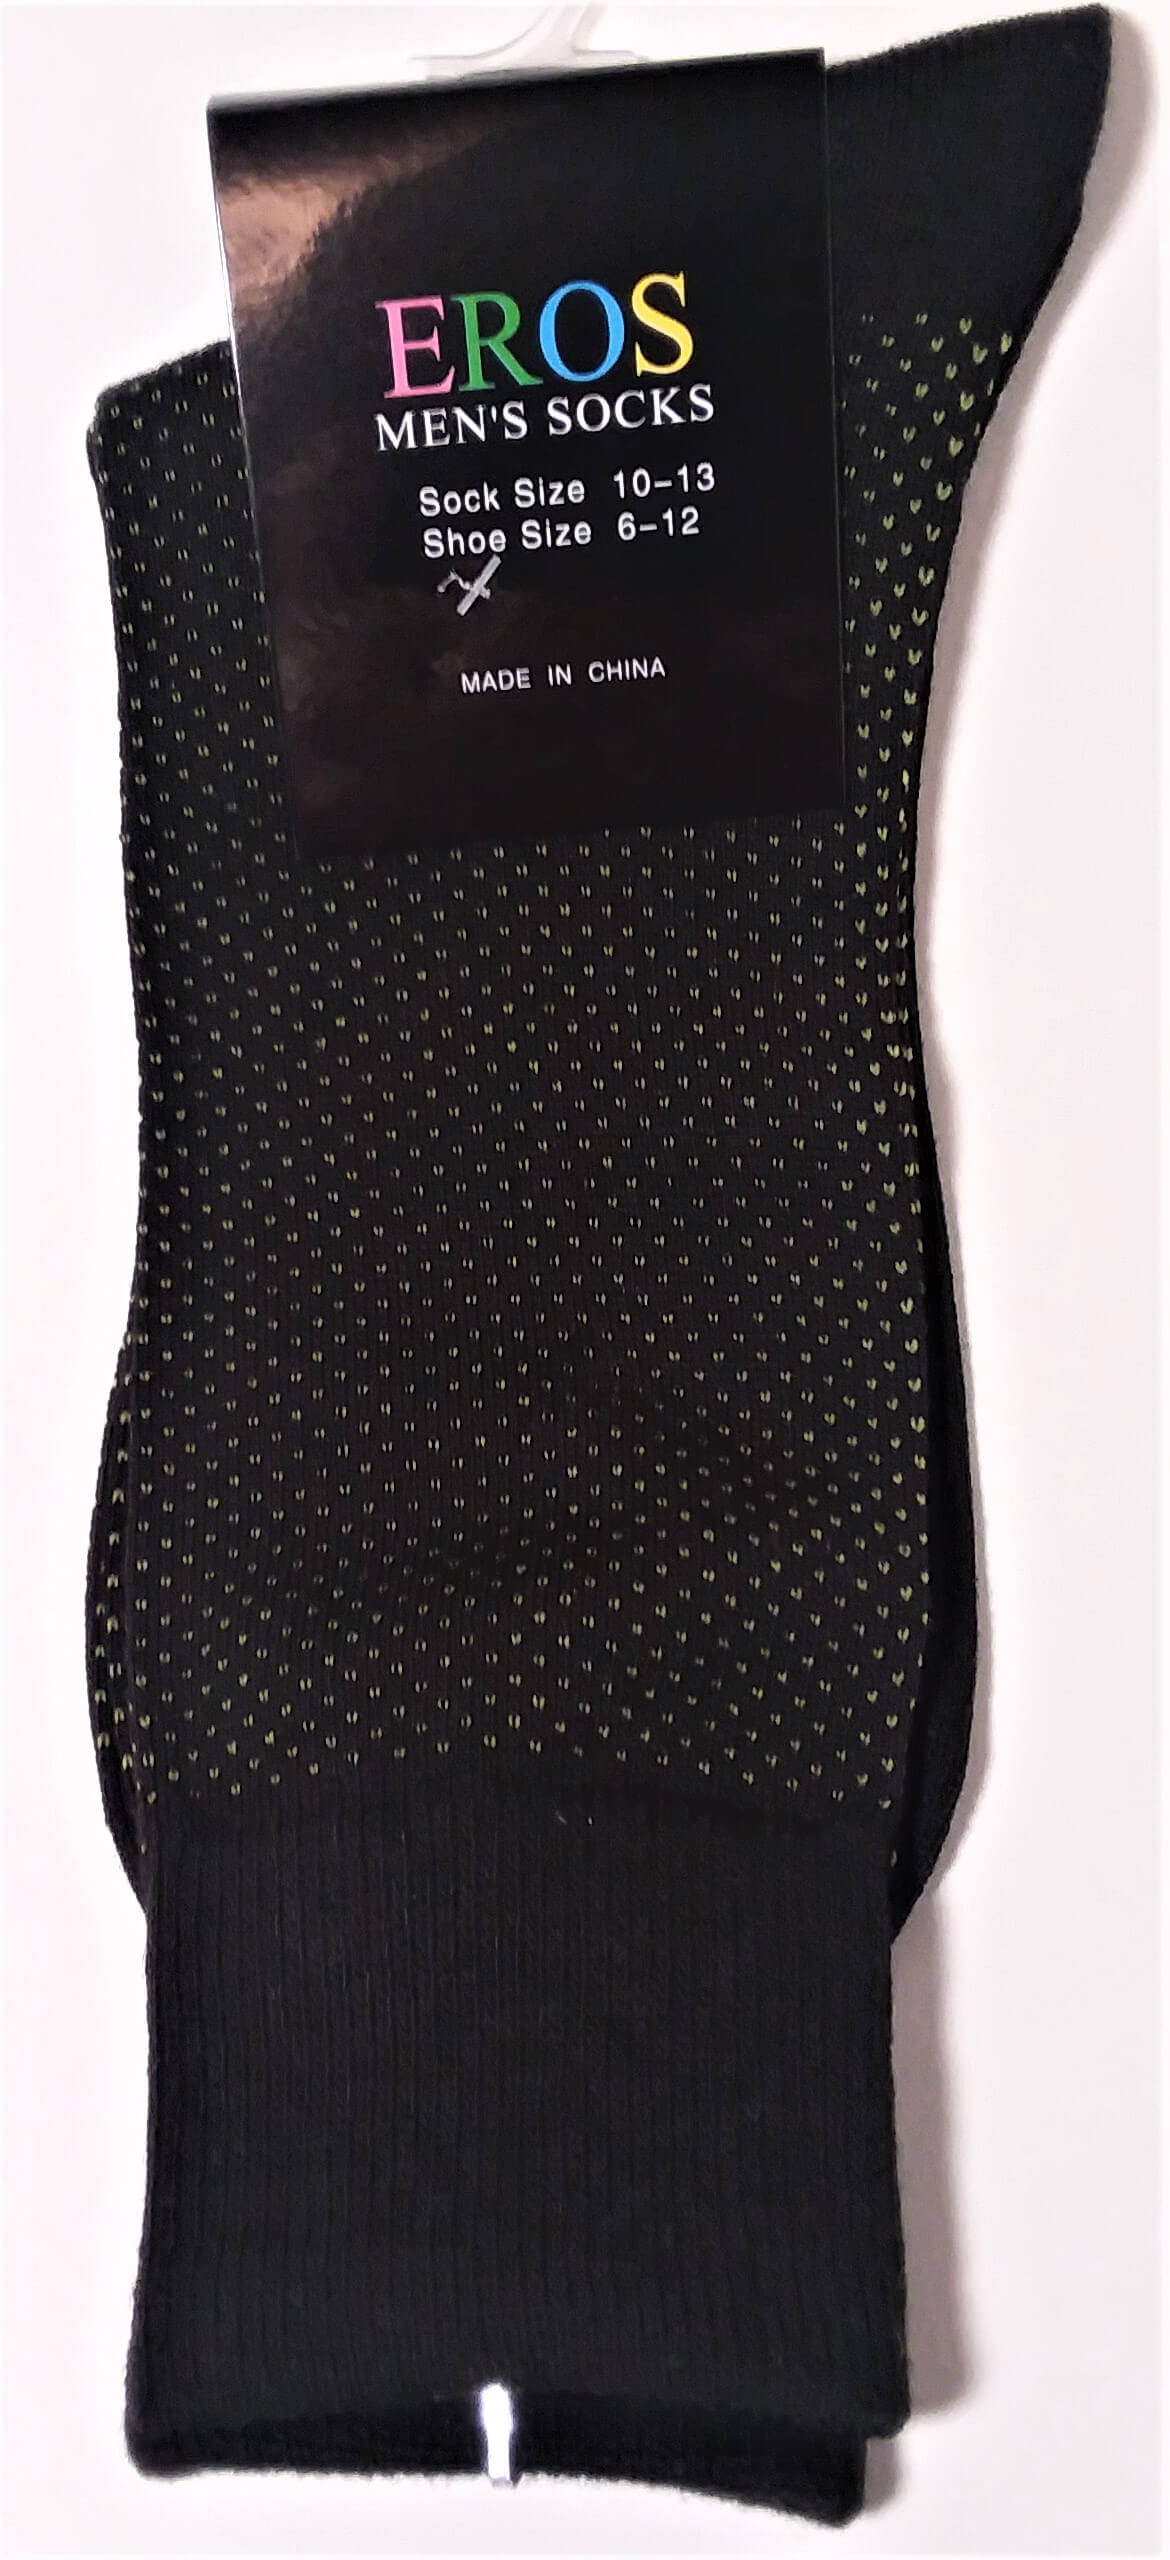 Men's Casual Crew Socks.Black with white dots